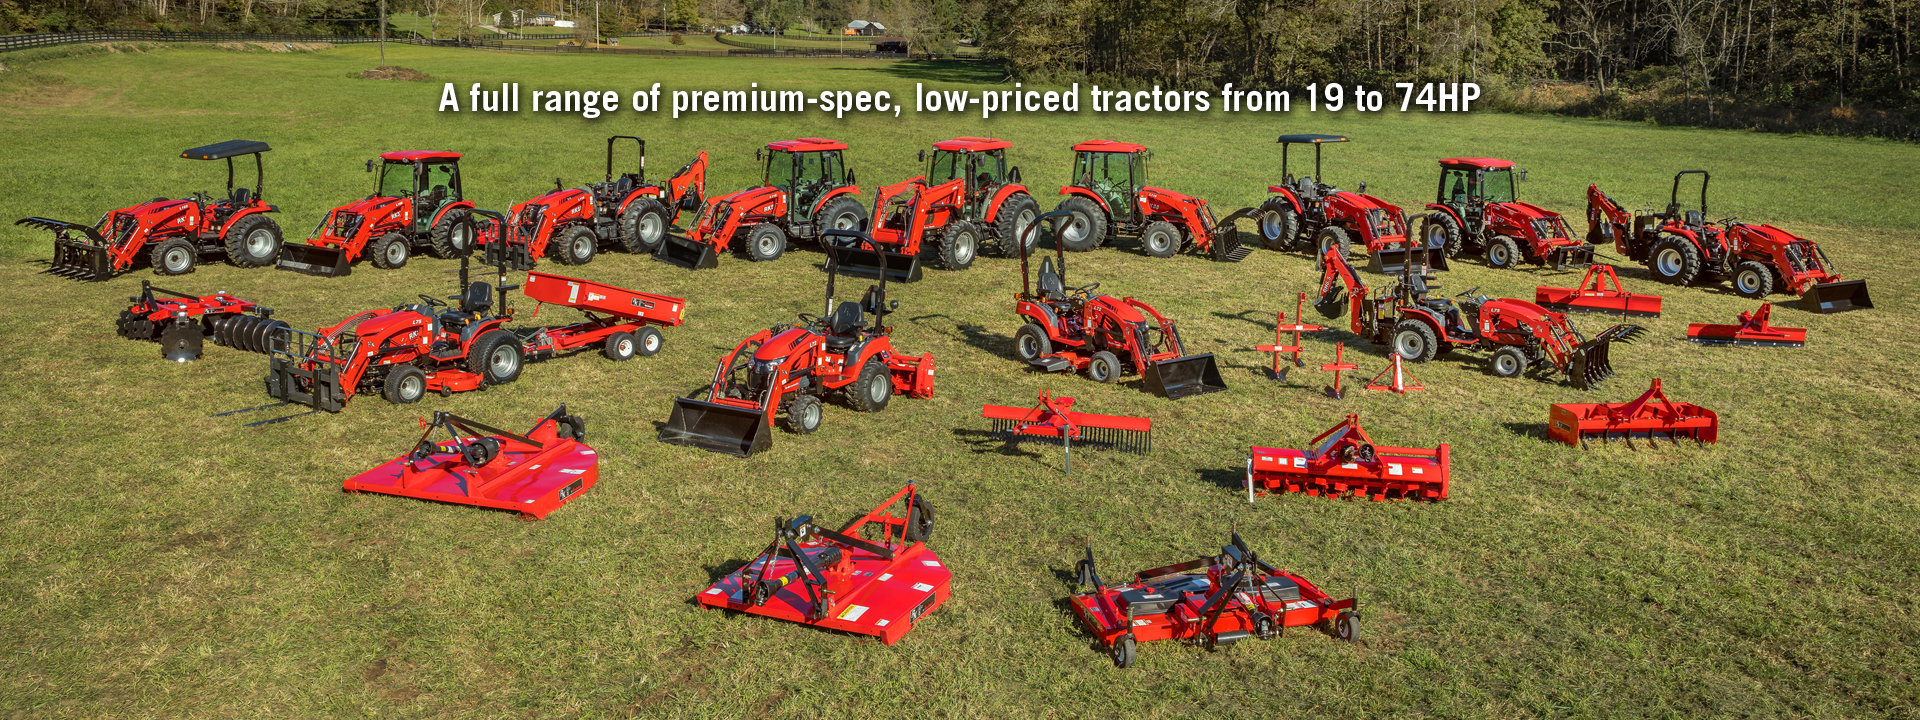 d3048392a RK Tractors | More Tractor Less Price TM